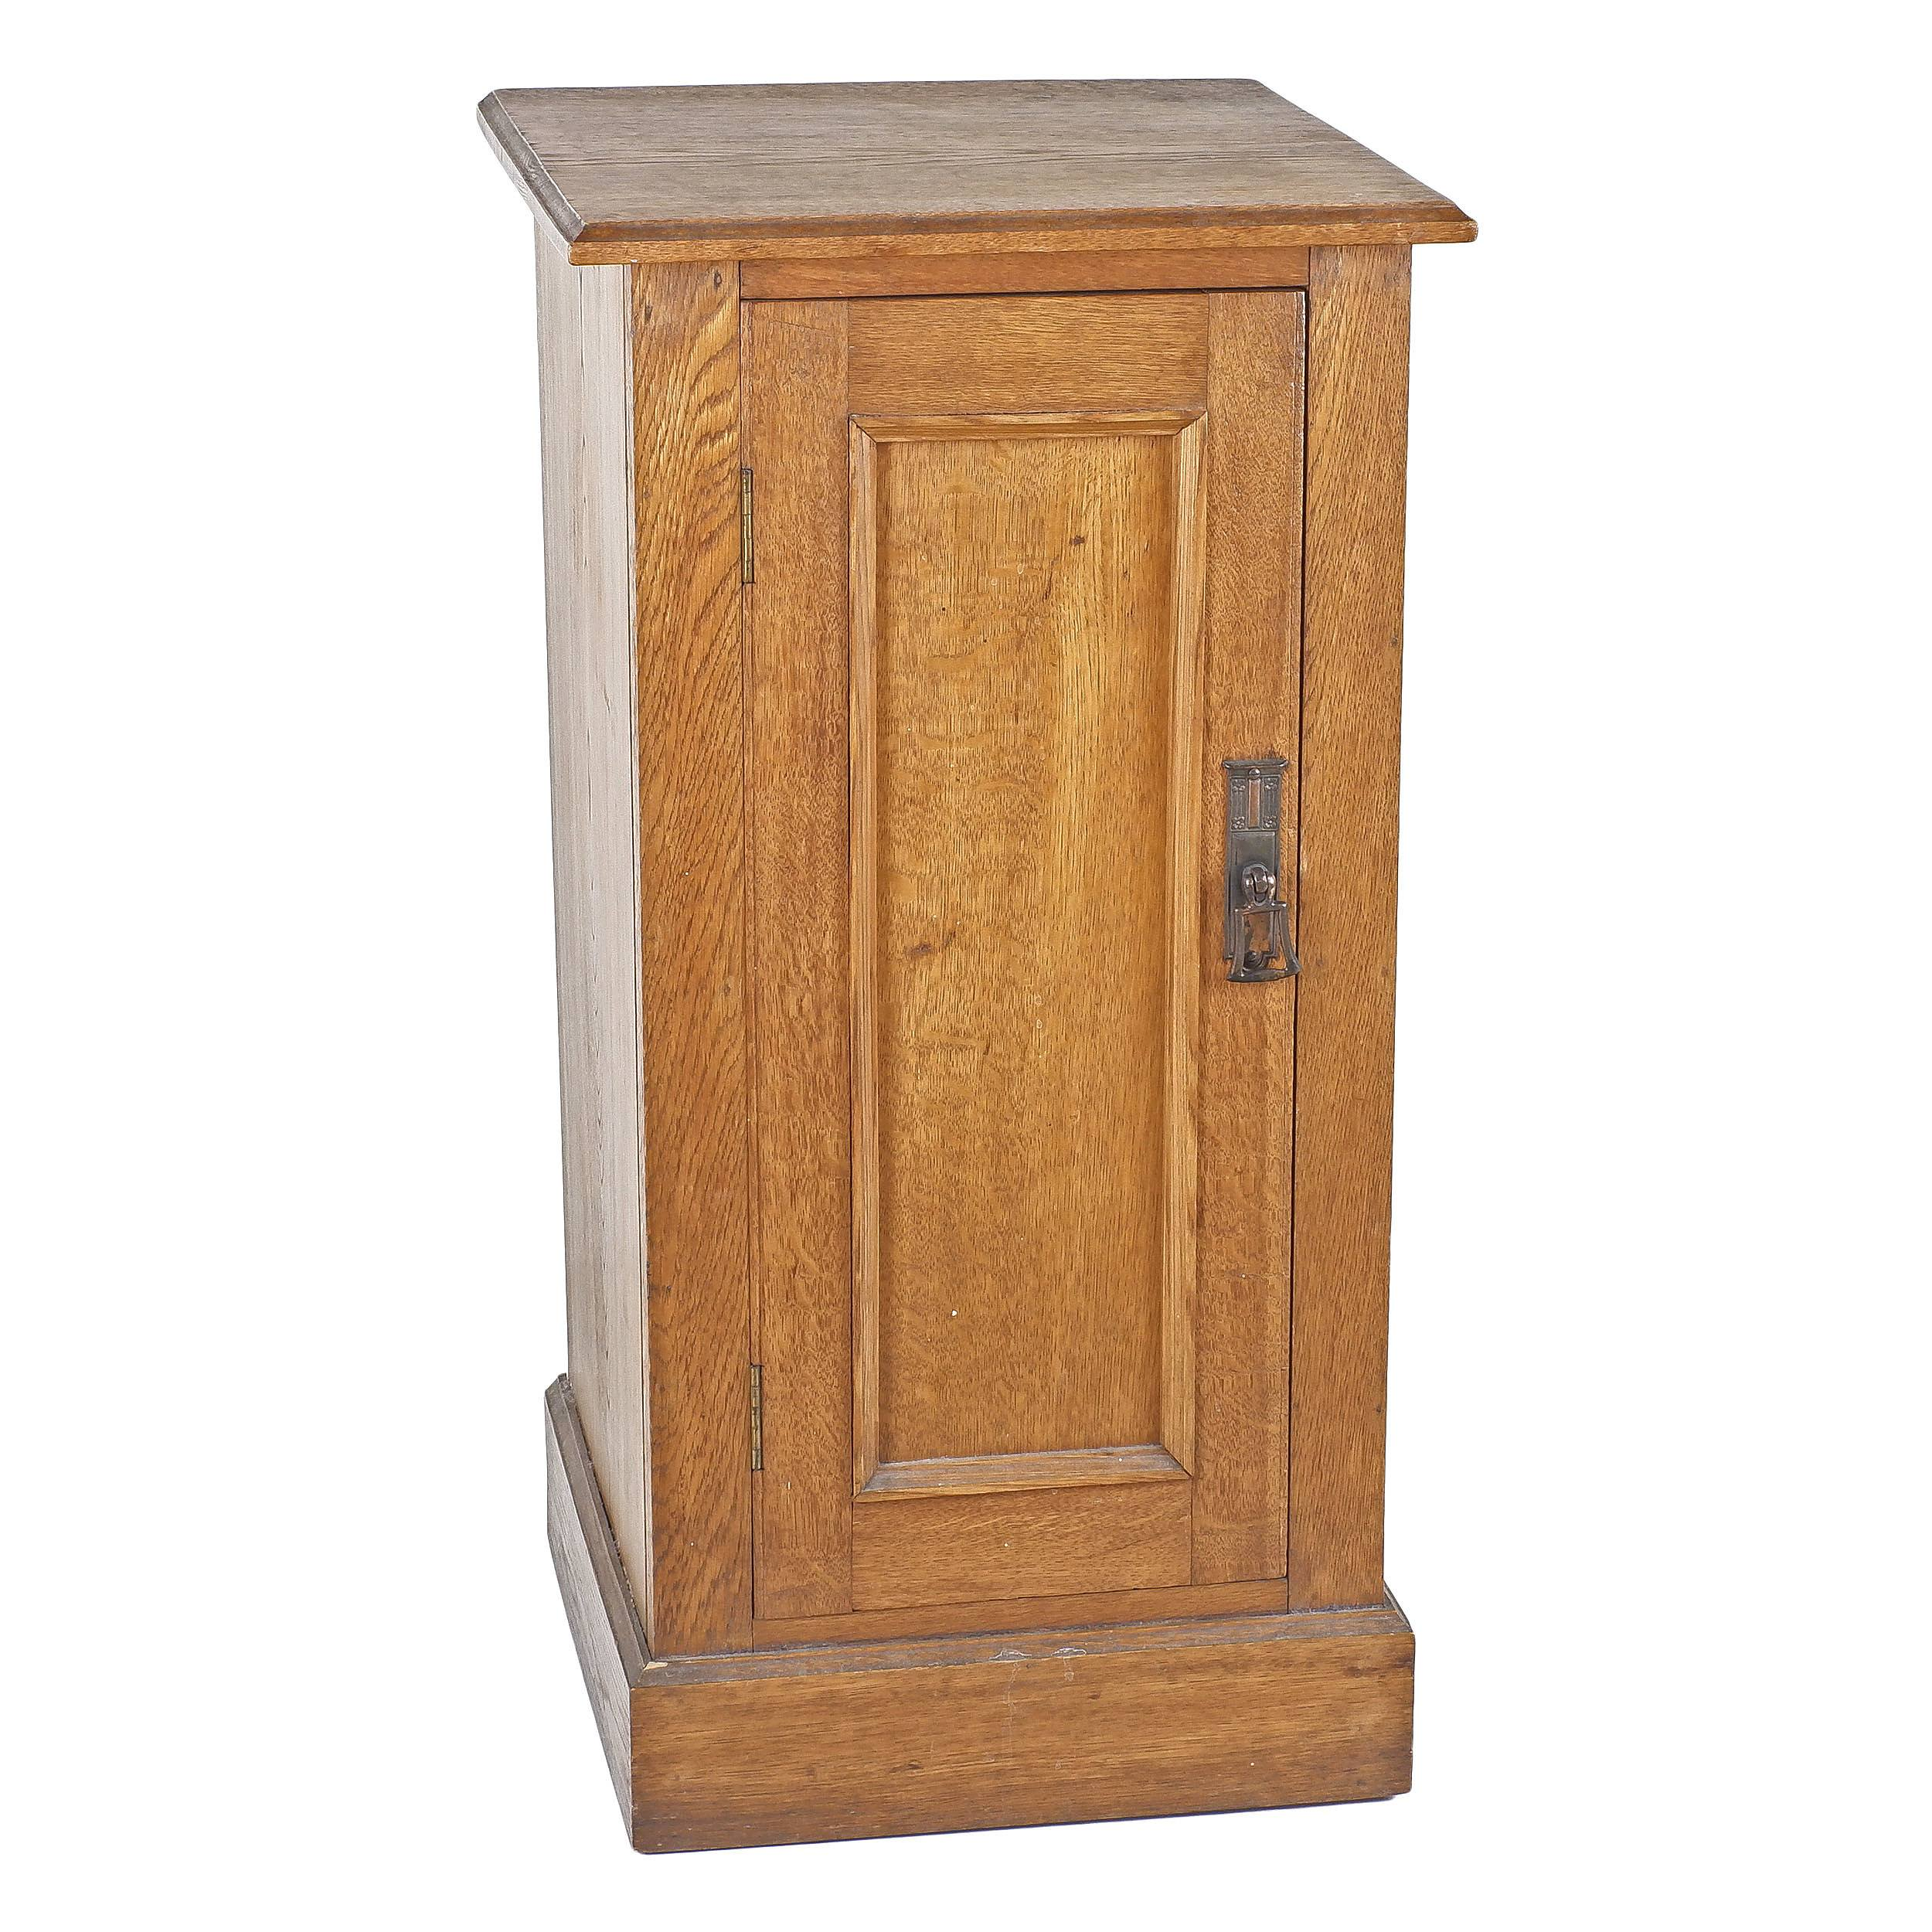 'Oak Bedside Cabinet Early 20th Century'